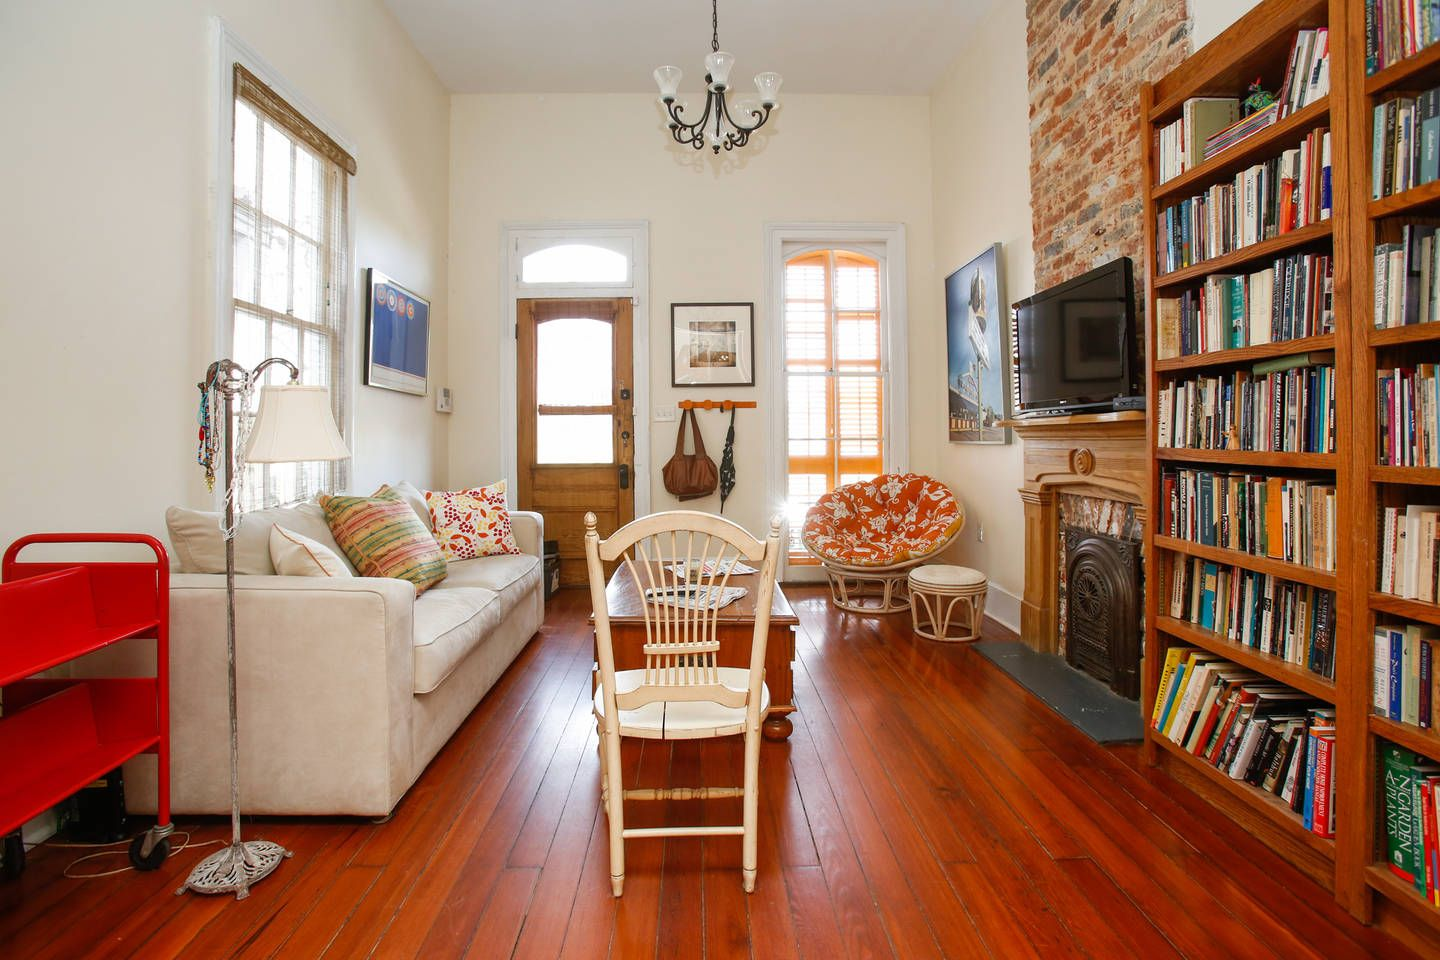 Cozy One Bedroom NOLA Apartment in New Orleans | Apartment ...